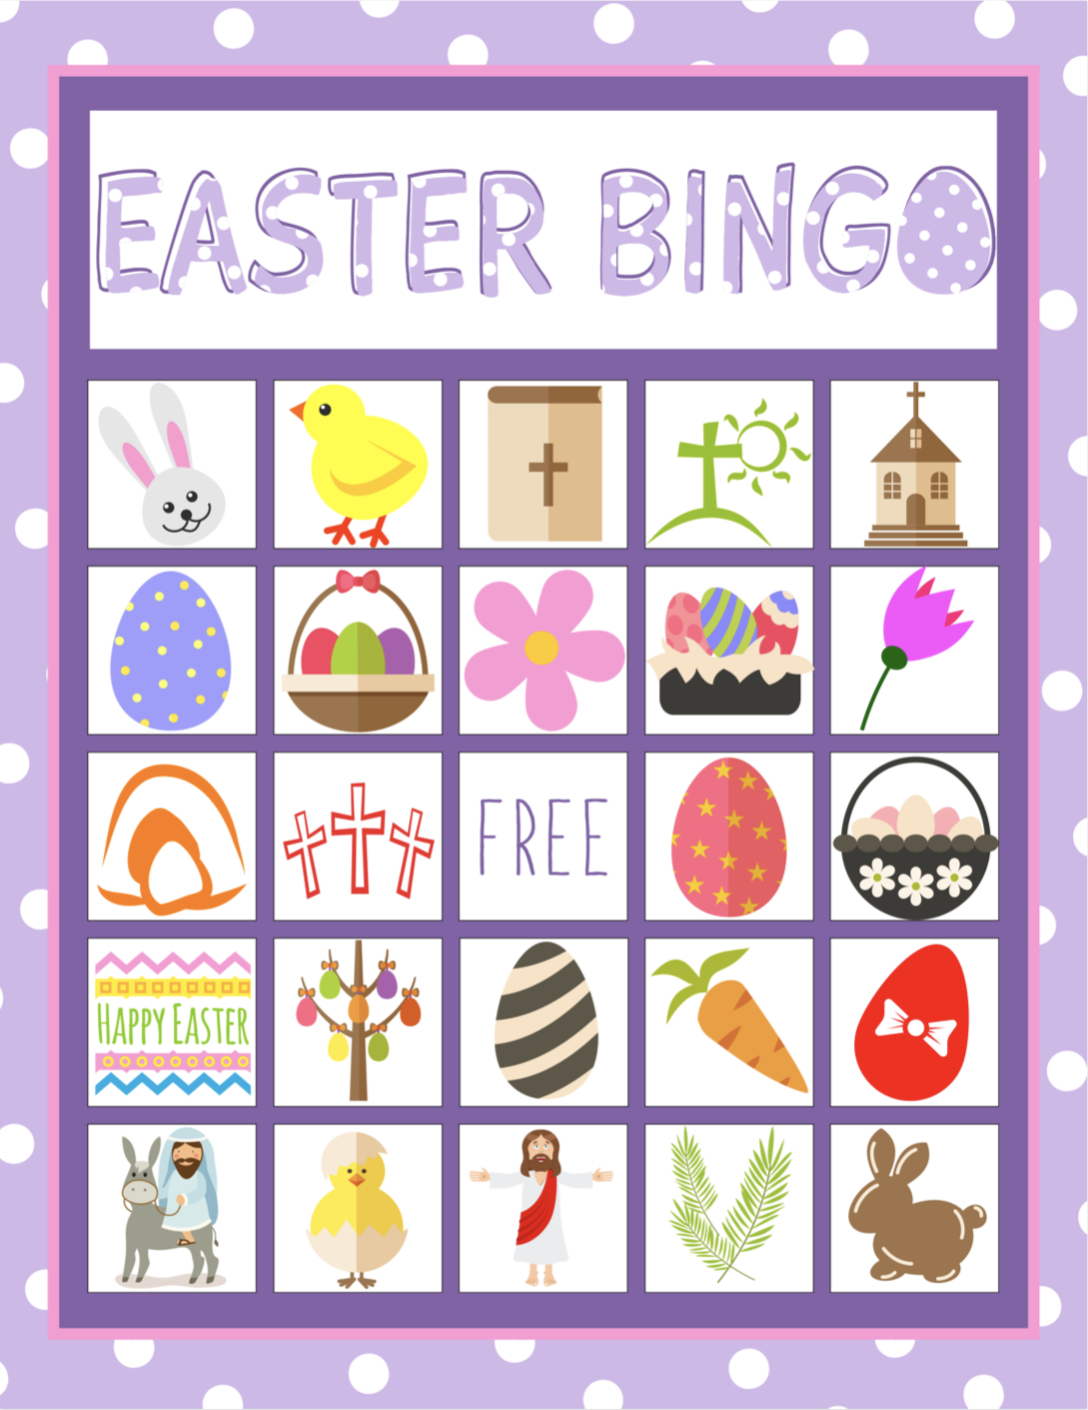 Easter Bingo Game For Kids | Bingo Games For Kids, Easter